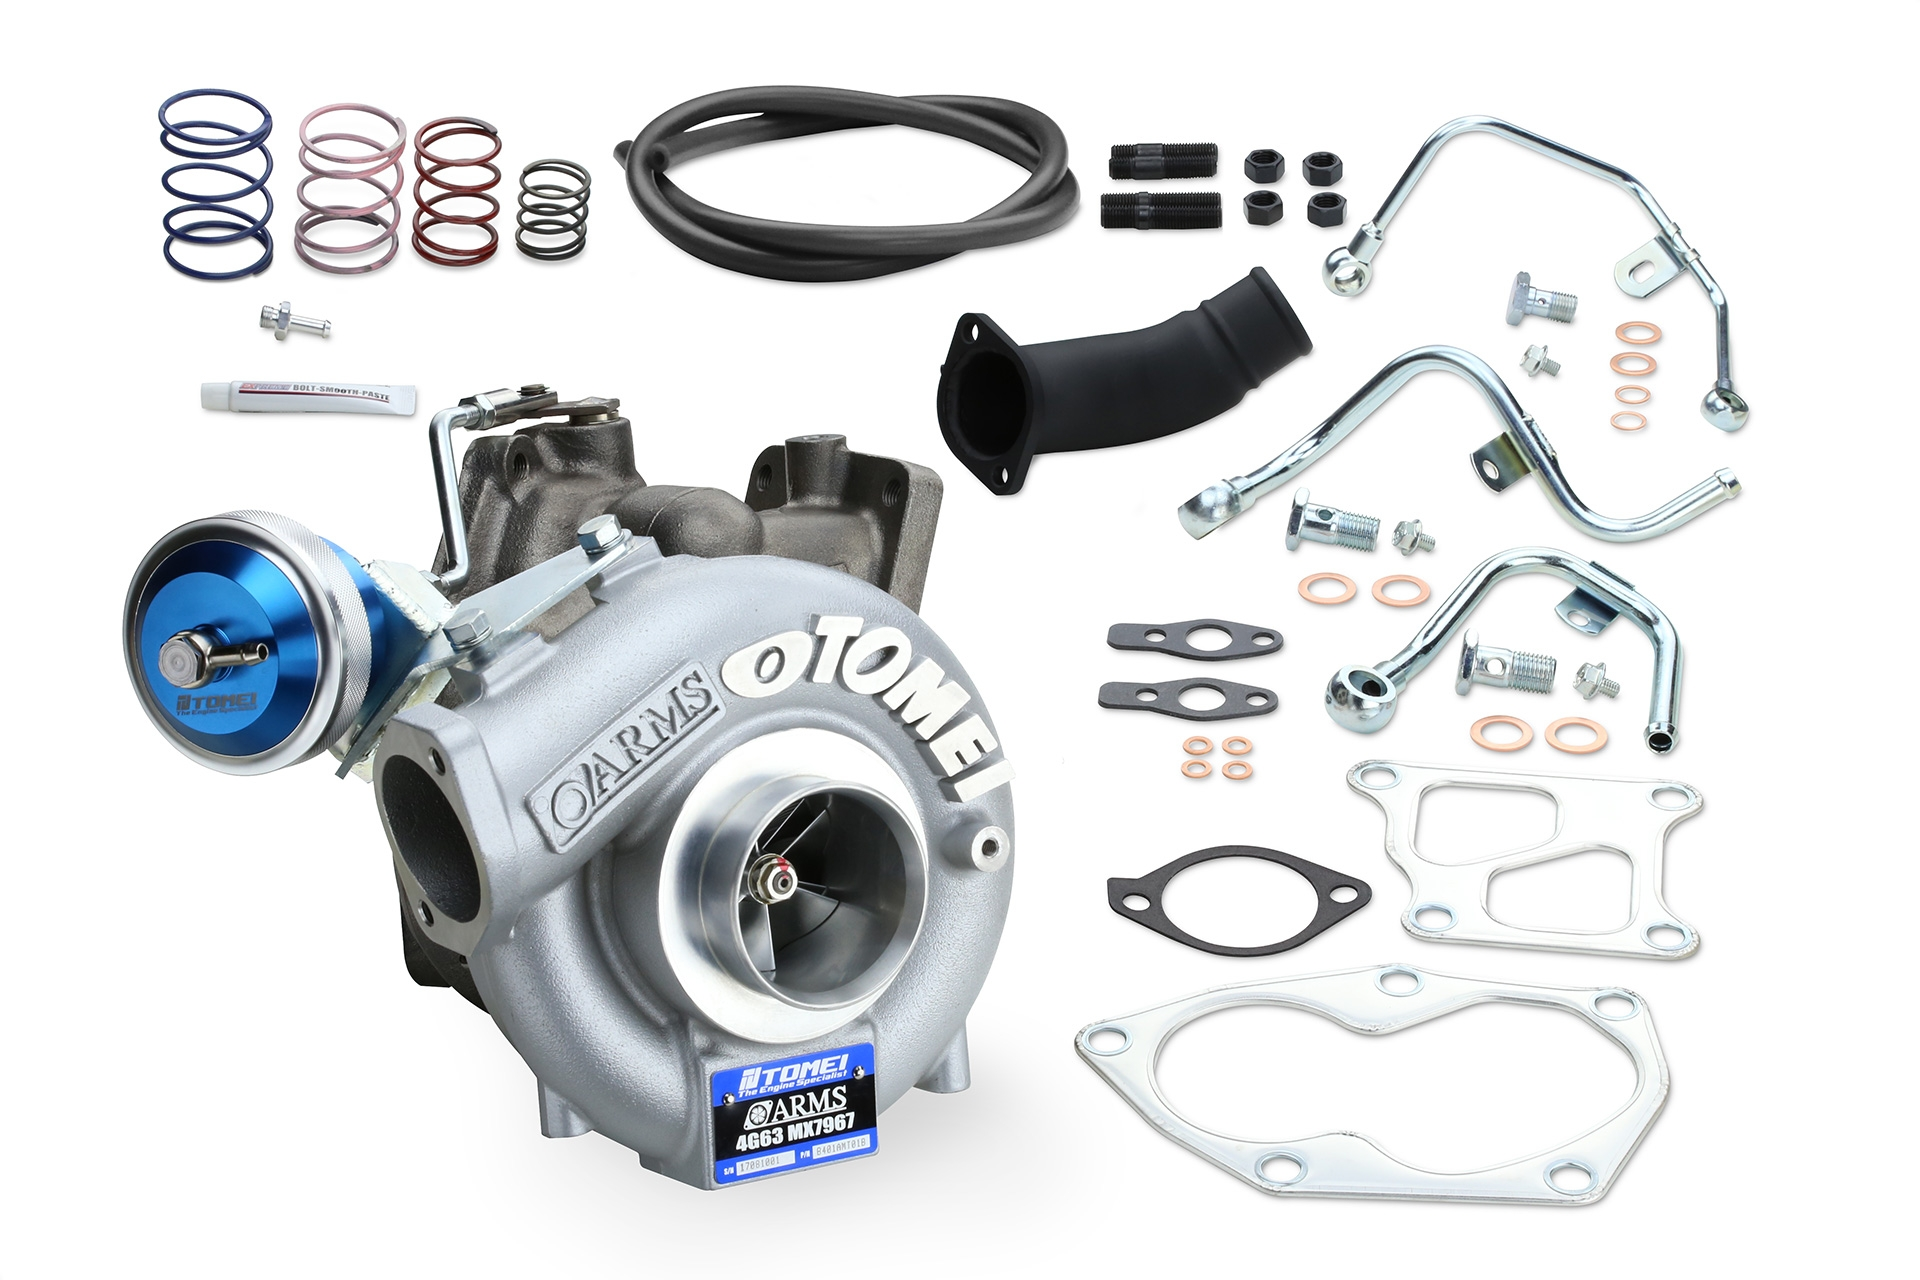 Tomei Turbocharger Kit Arms MX7960 4G63 EVO4-9